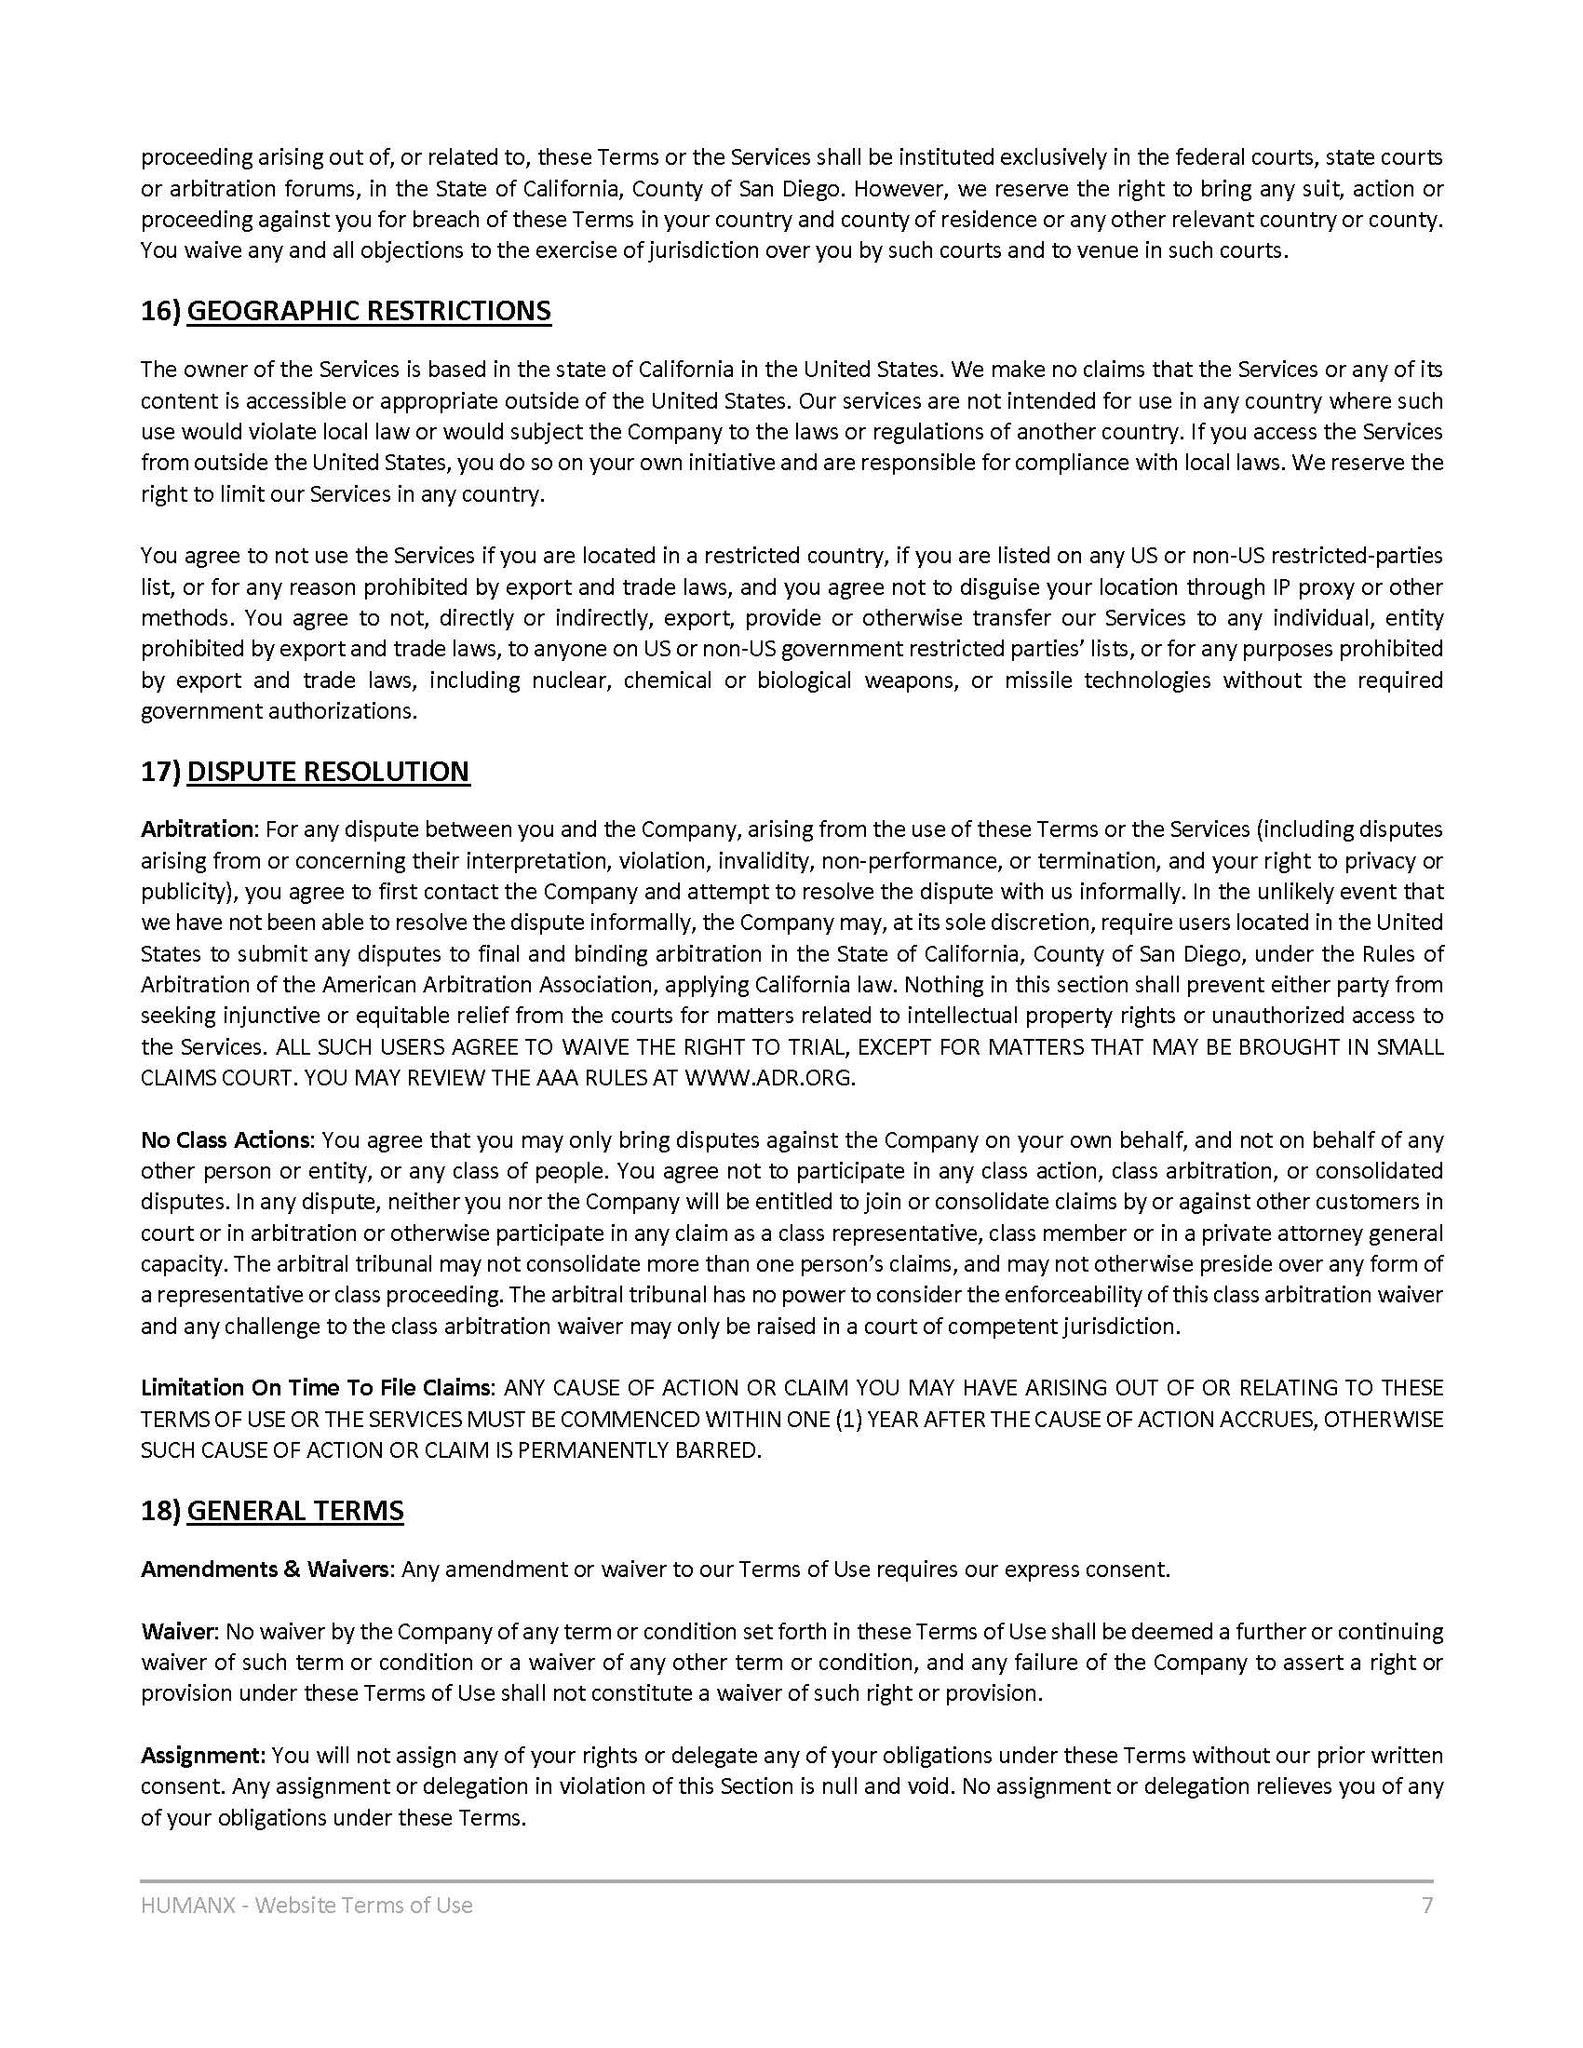 Terms of Use - Page 7